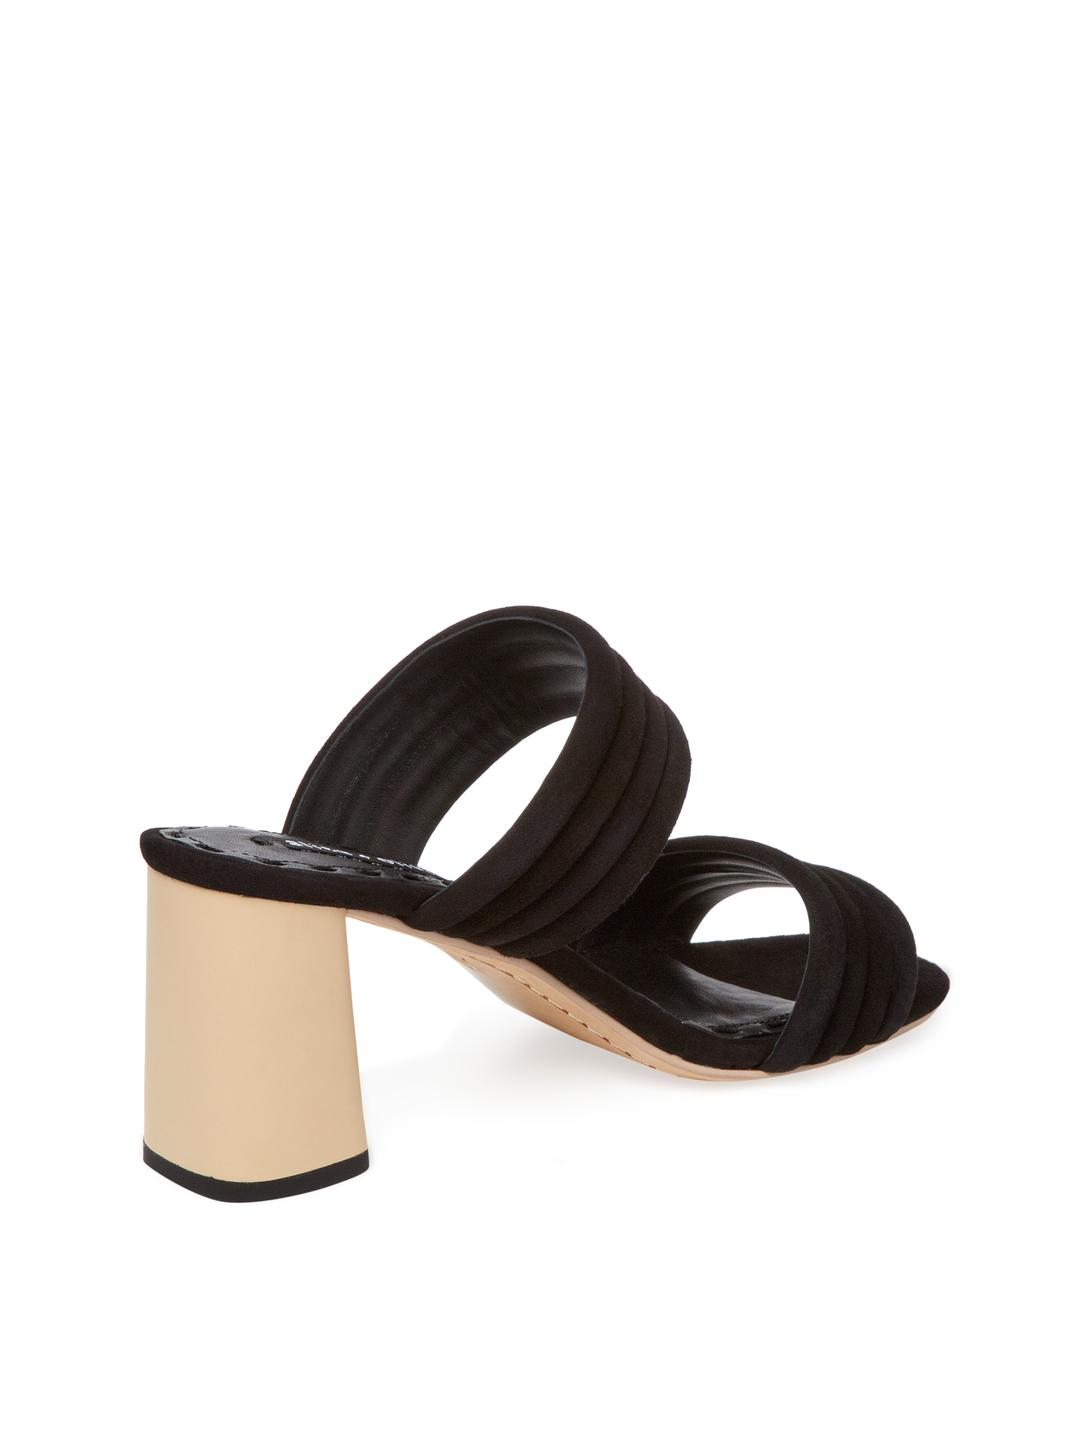 dac7a9be3 Lyst - Alice + Olivia Colby Leather Sandal in Black